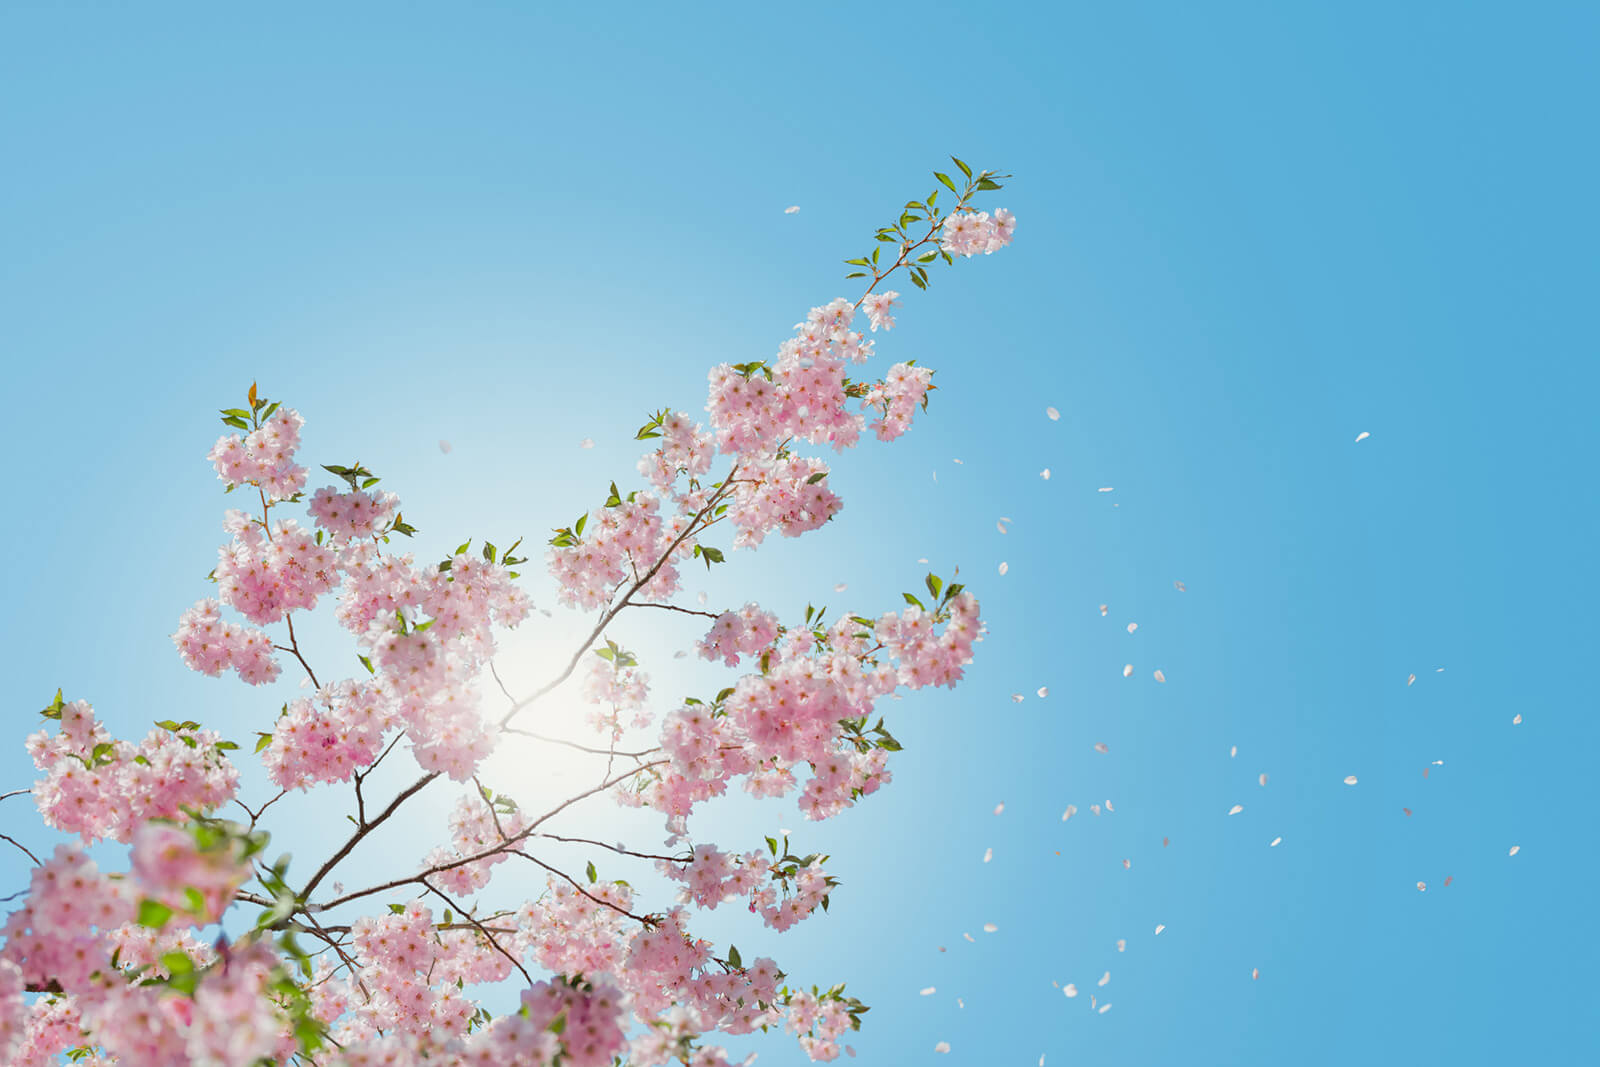 Cherry blossom with blue sky.